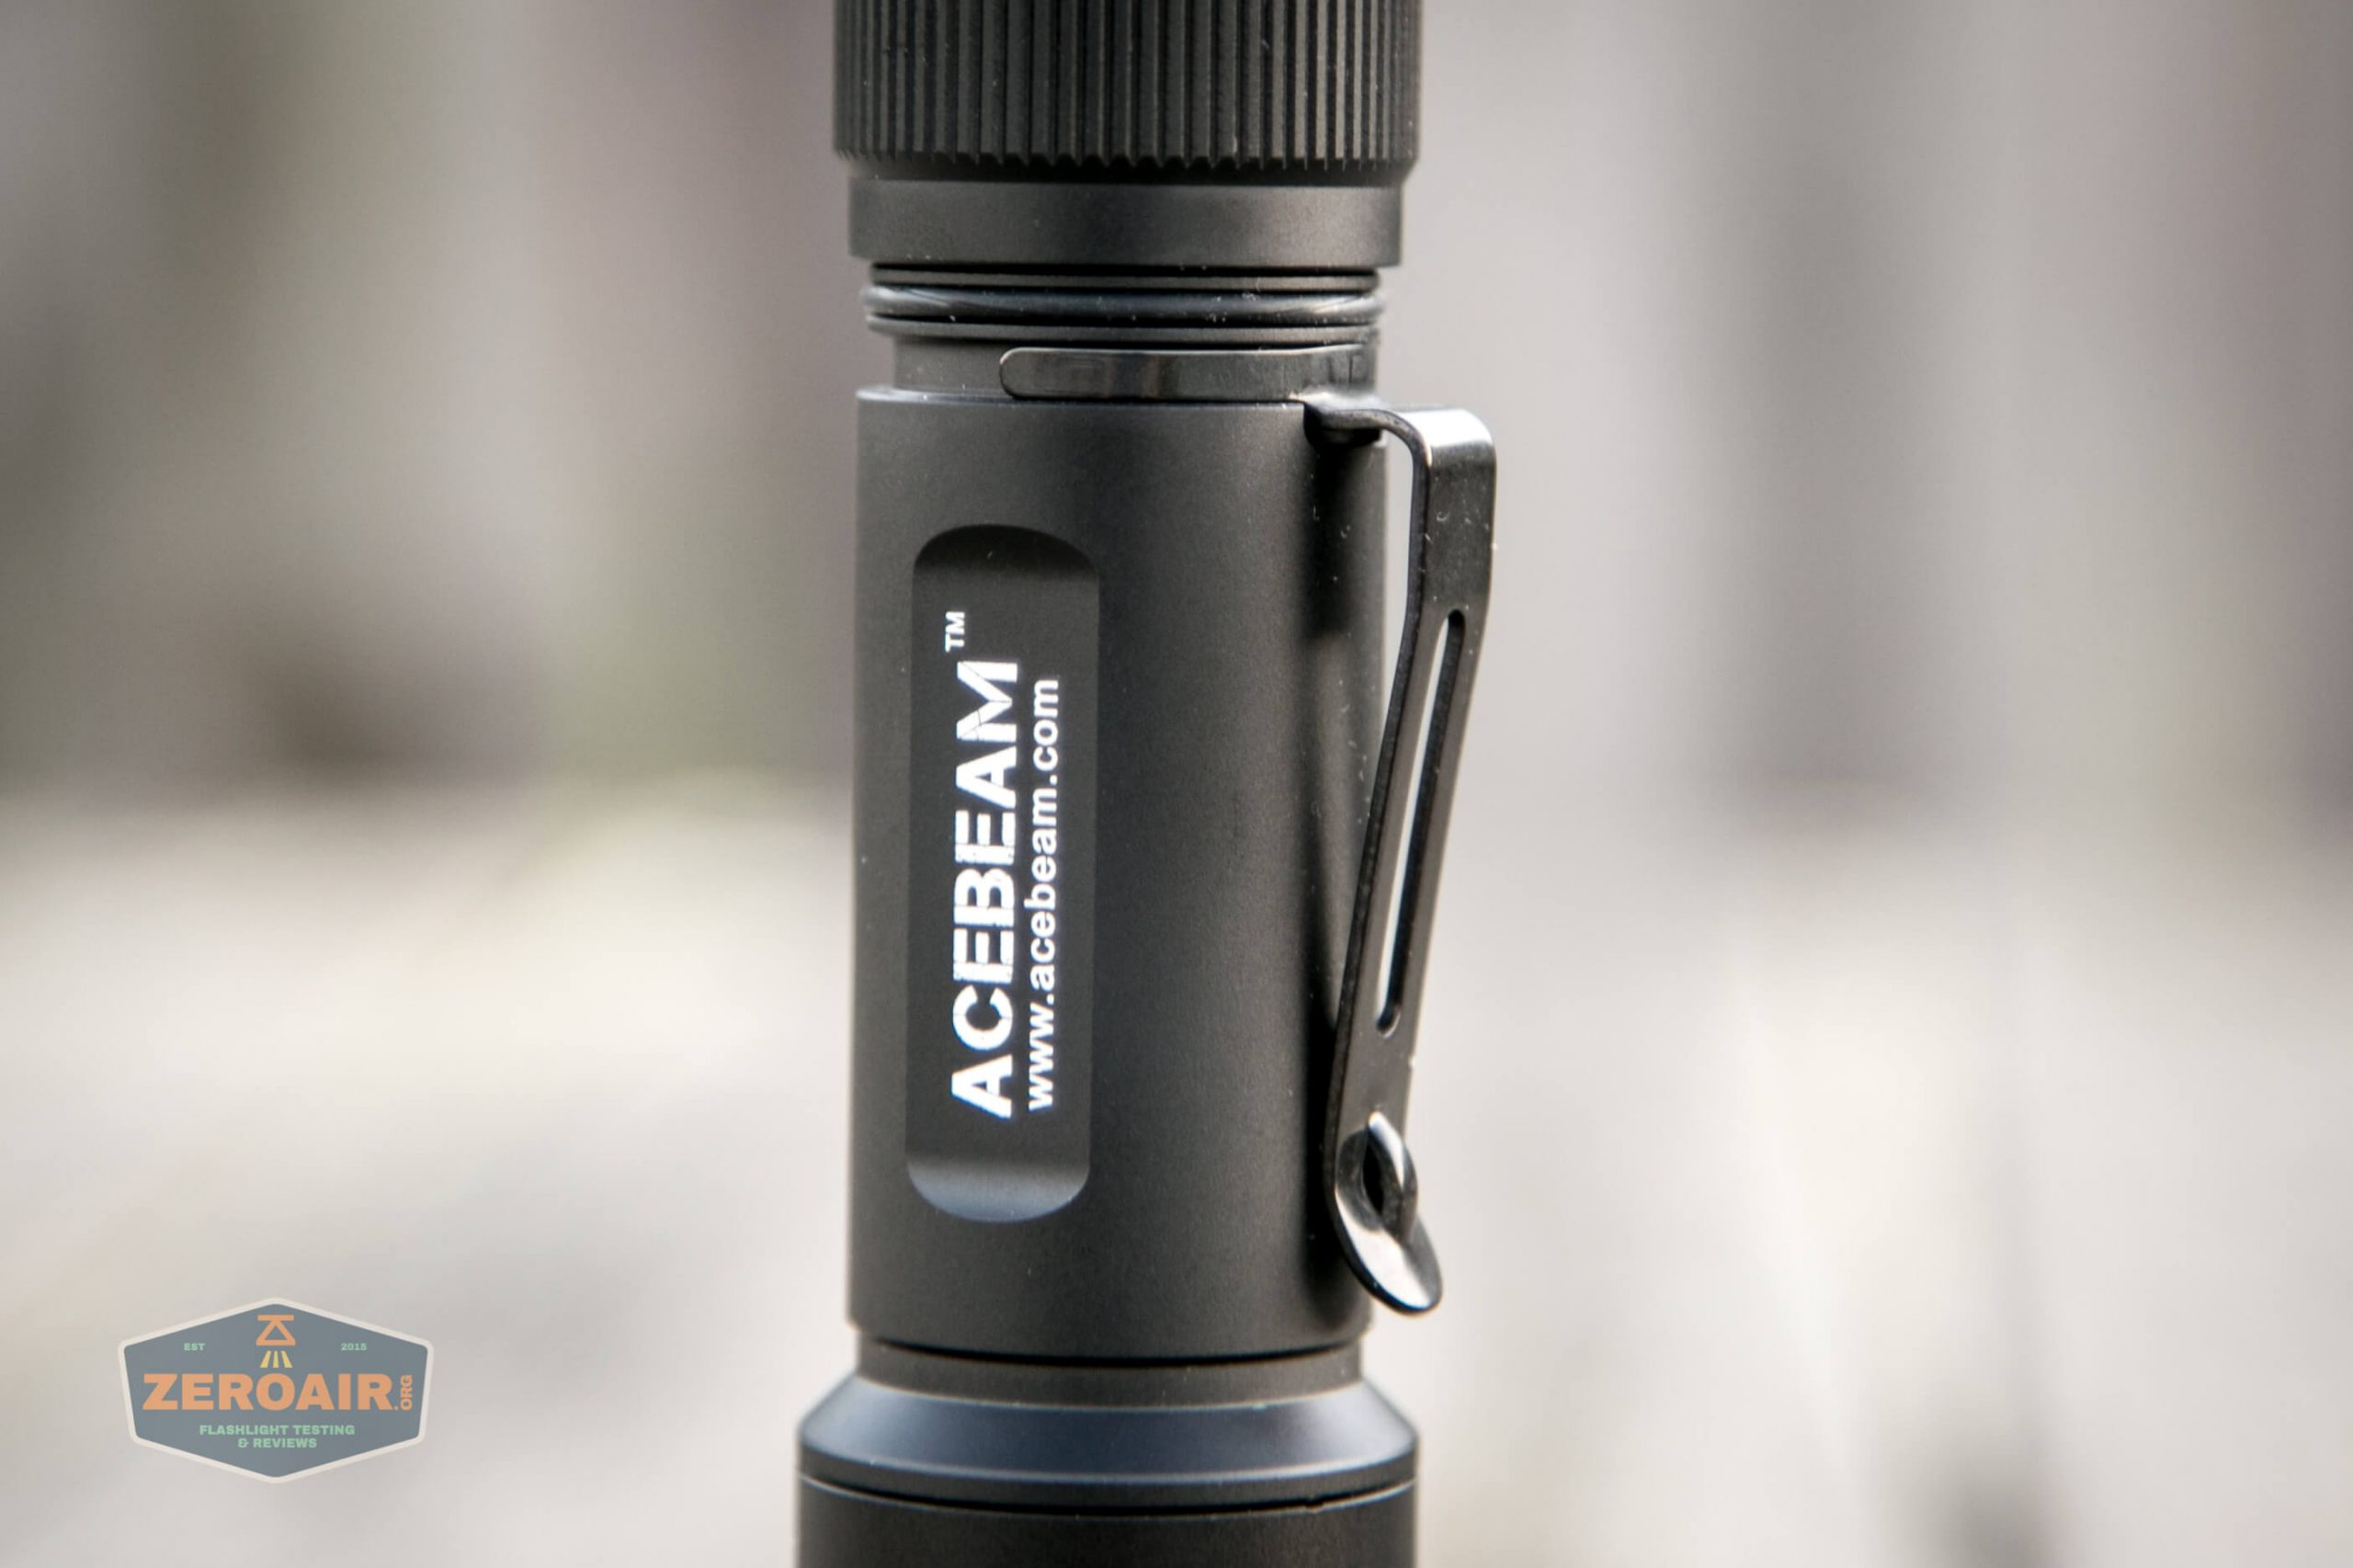 acebeam l17 osram white 18650 thrower tactical ring off showing pocket clip attachment